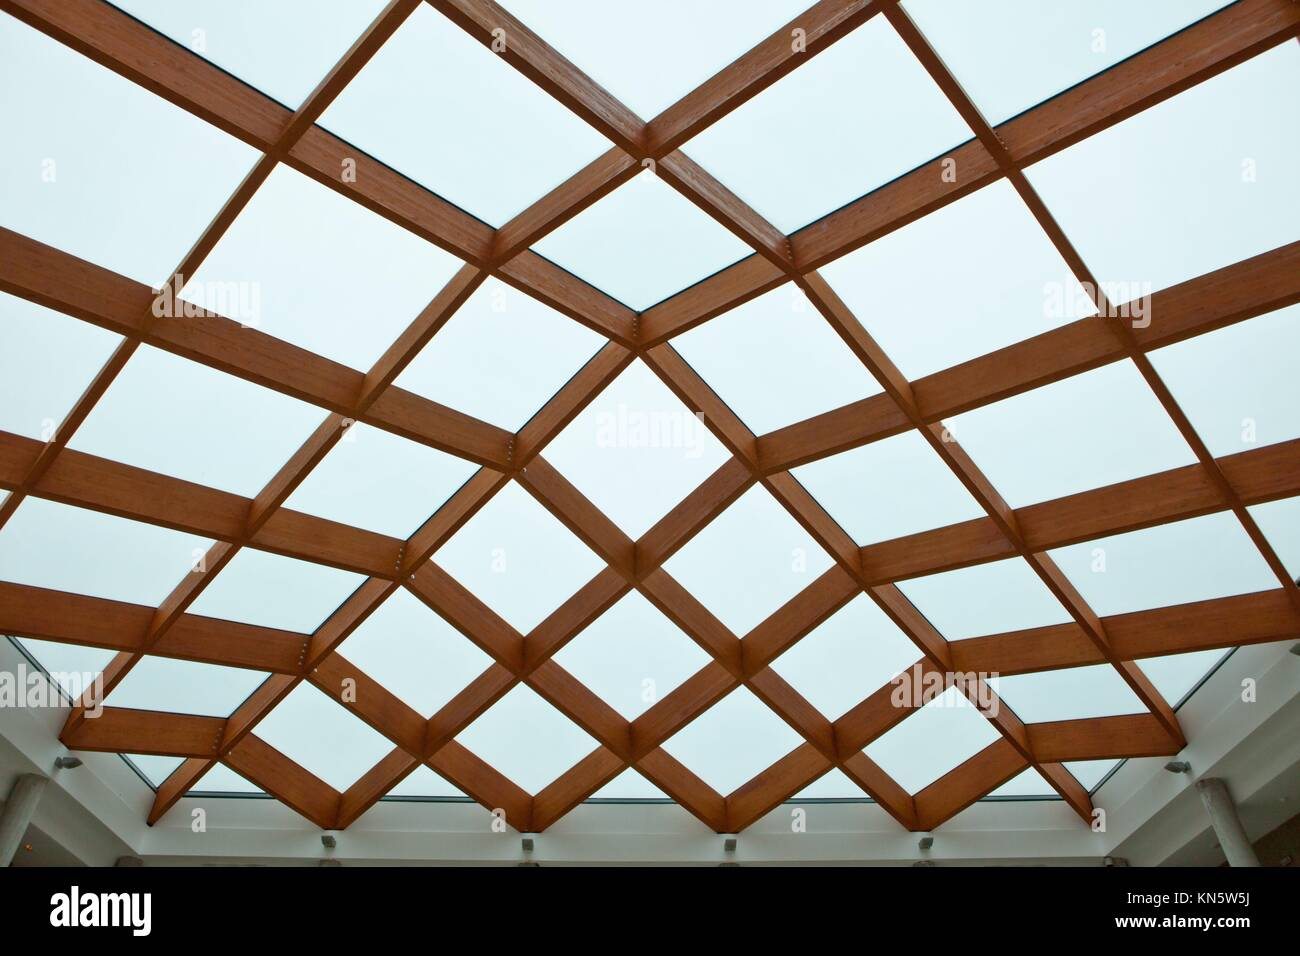 Sun-room patio area with transparent wooden ceiling. Stock Photo